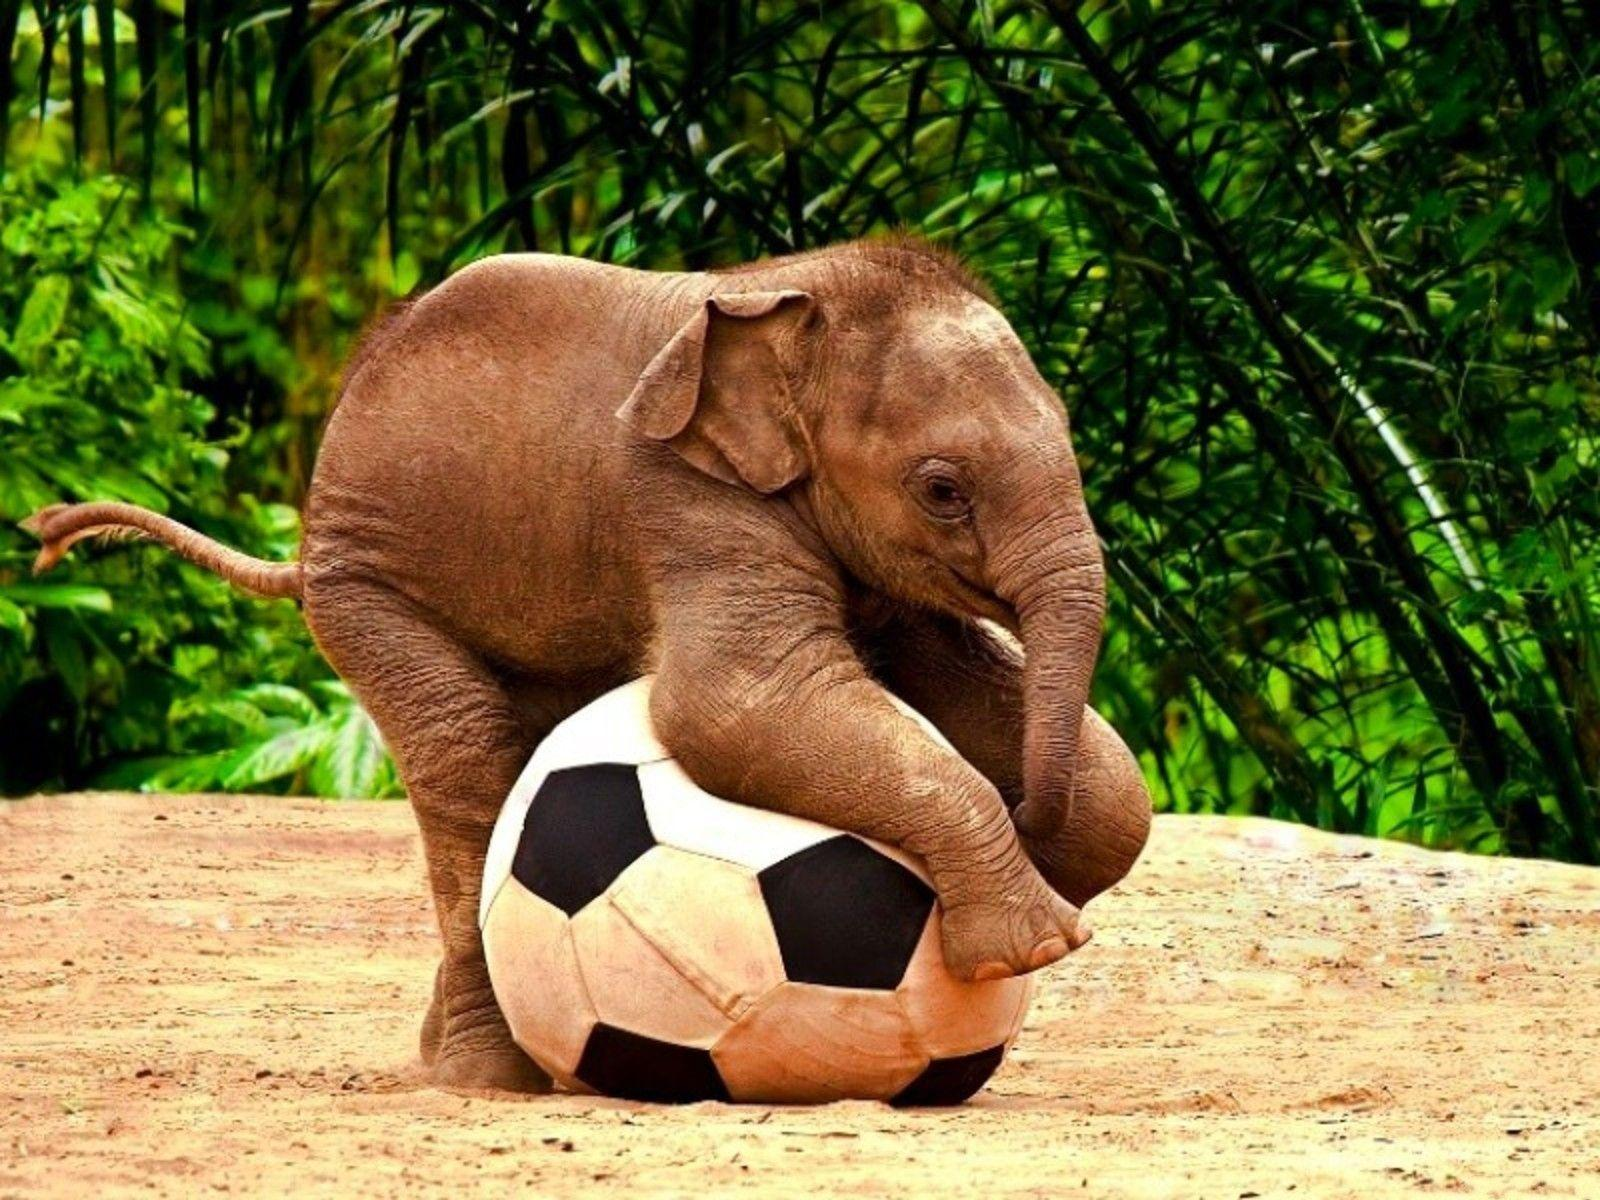 Cute Fat Baby Wallpapers Baby Elephant Wallpapers Wallpaper Cave